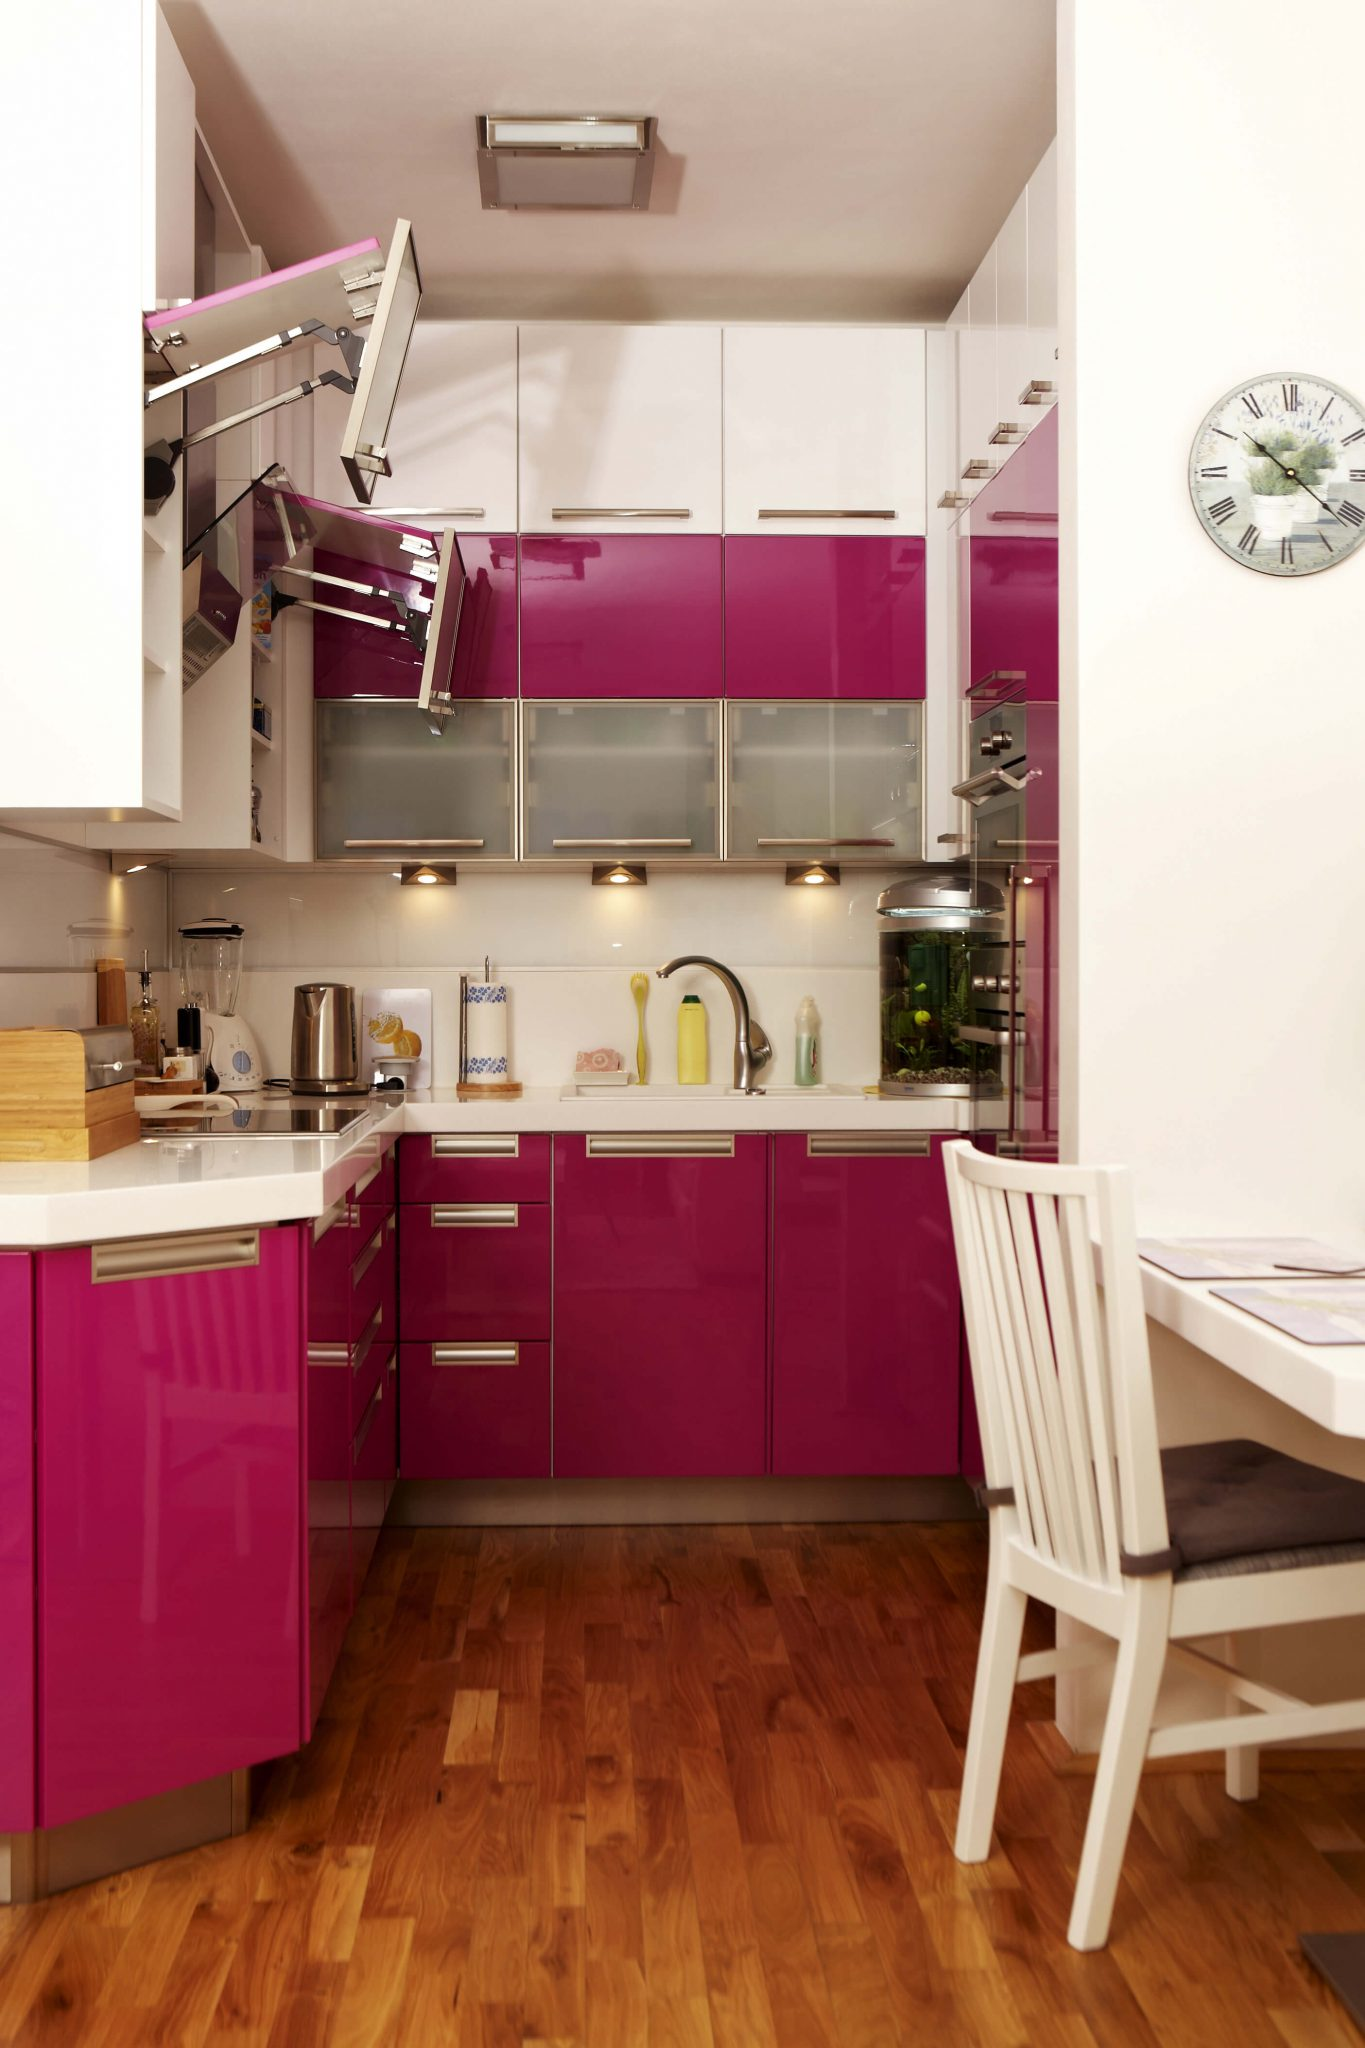 Apartment Galley Kitchen Designs 43 Small Kitchen Design Ideas Some Are Incredibly Tiny